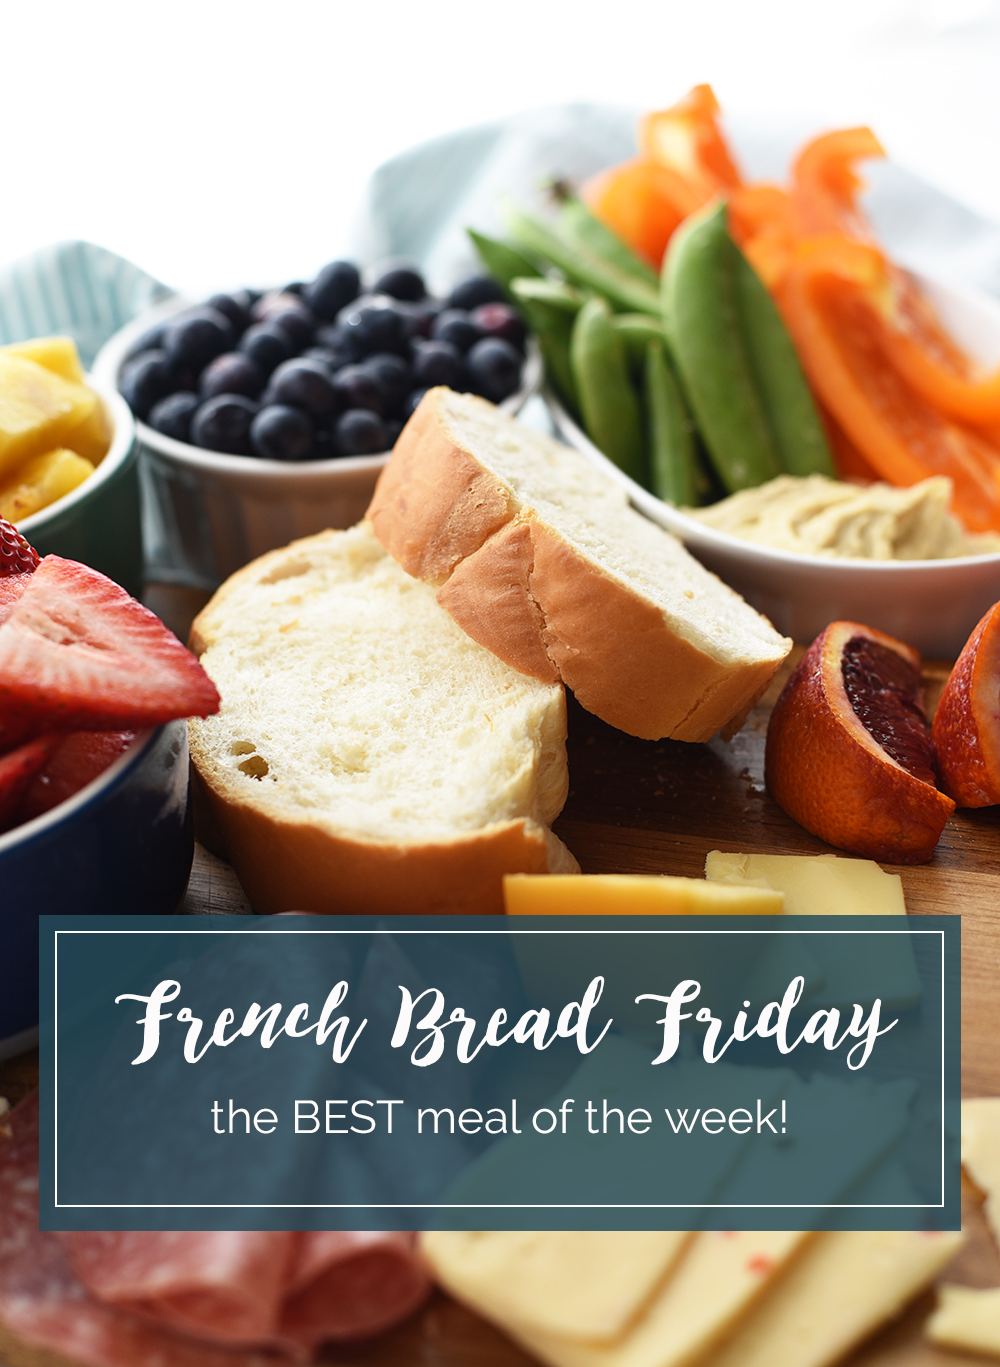 French Bread Friday is one of my favorite family traditions and the easiest meal of the week